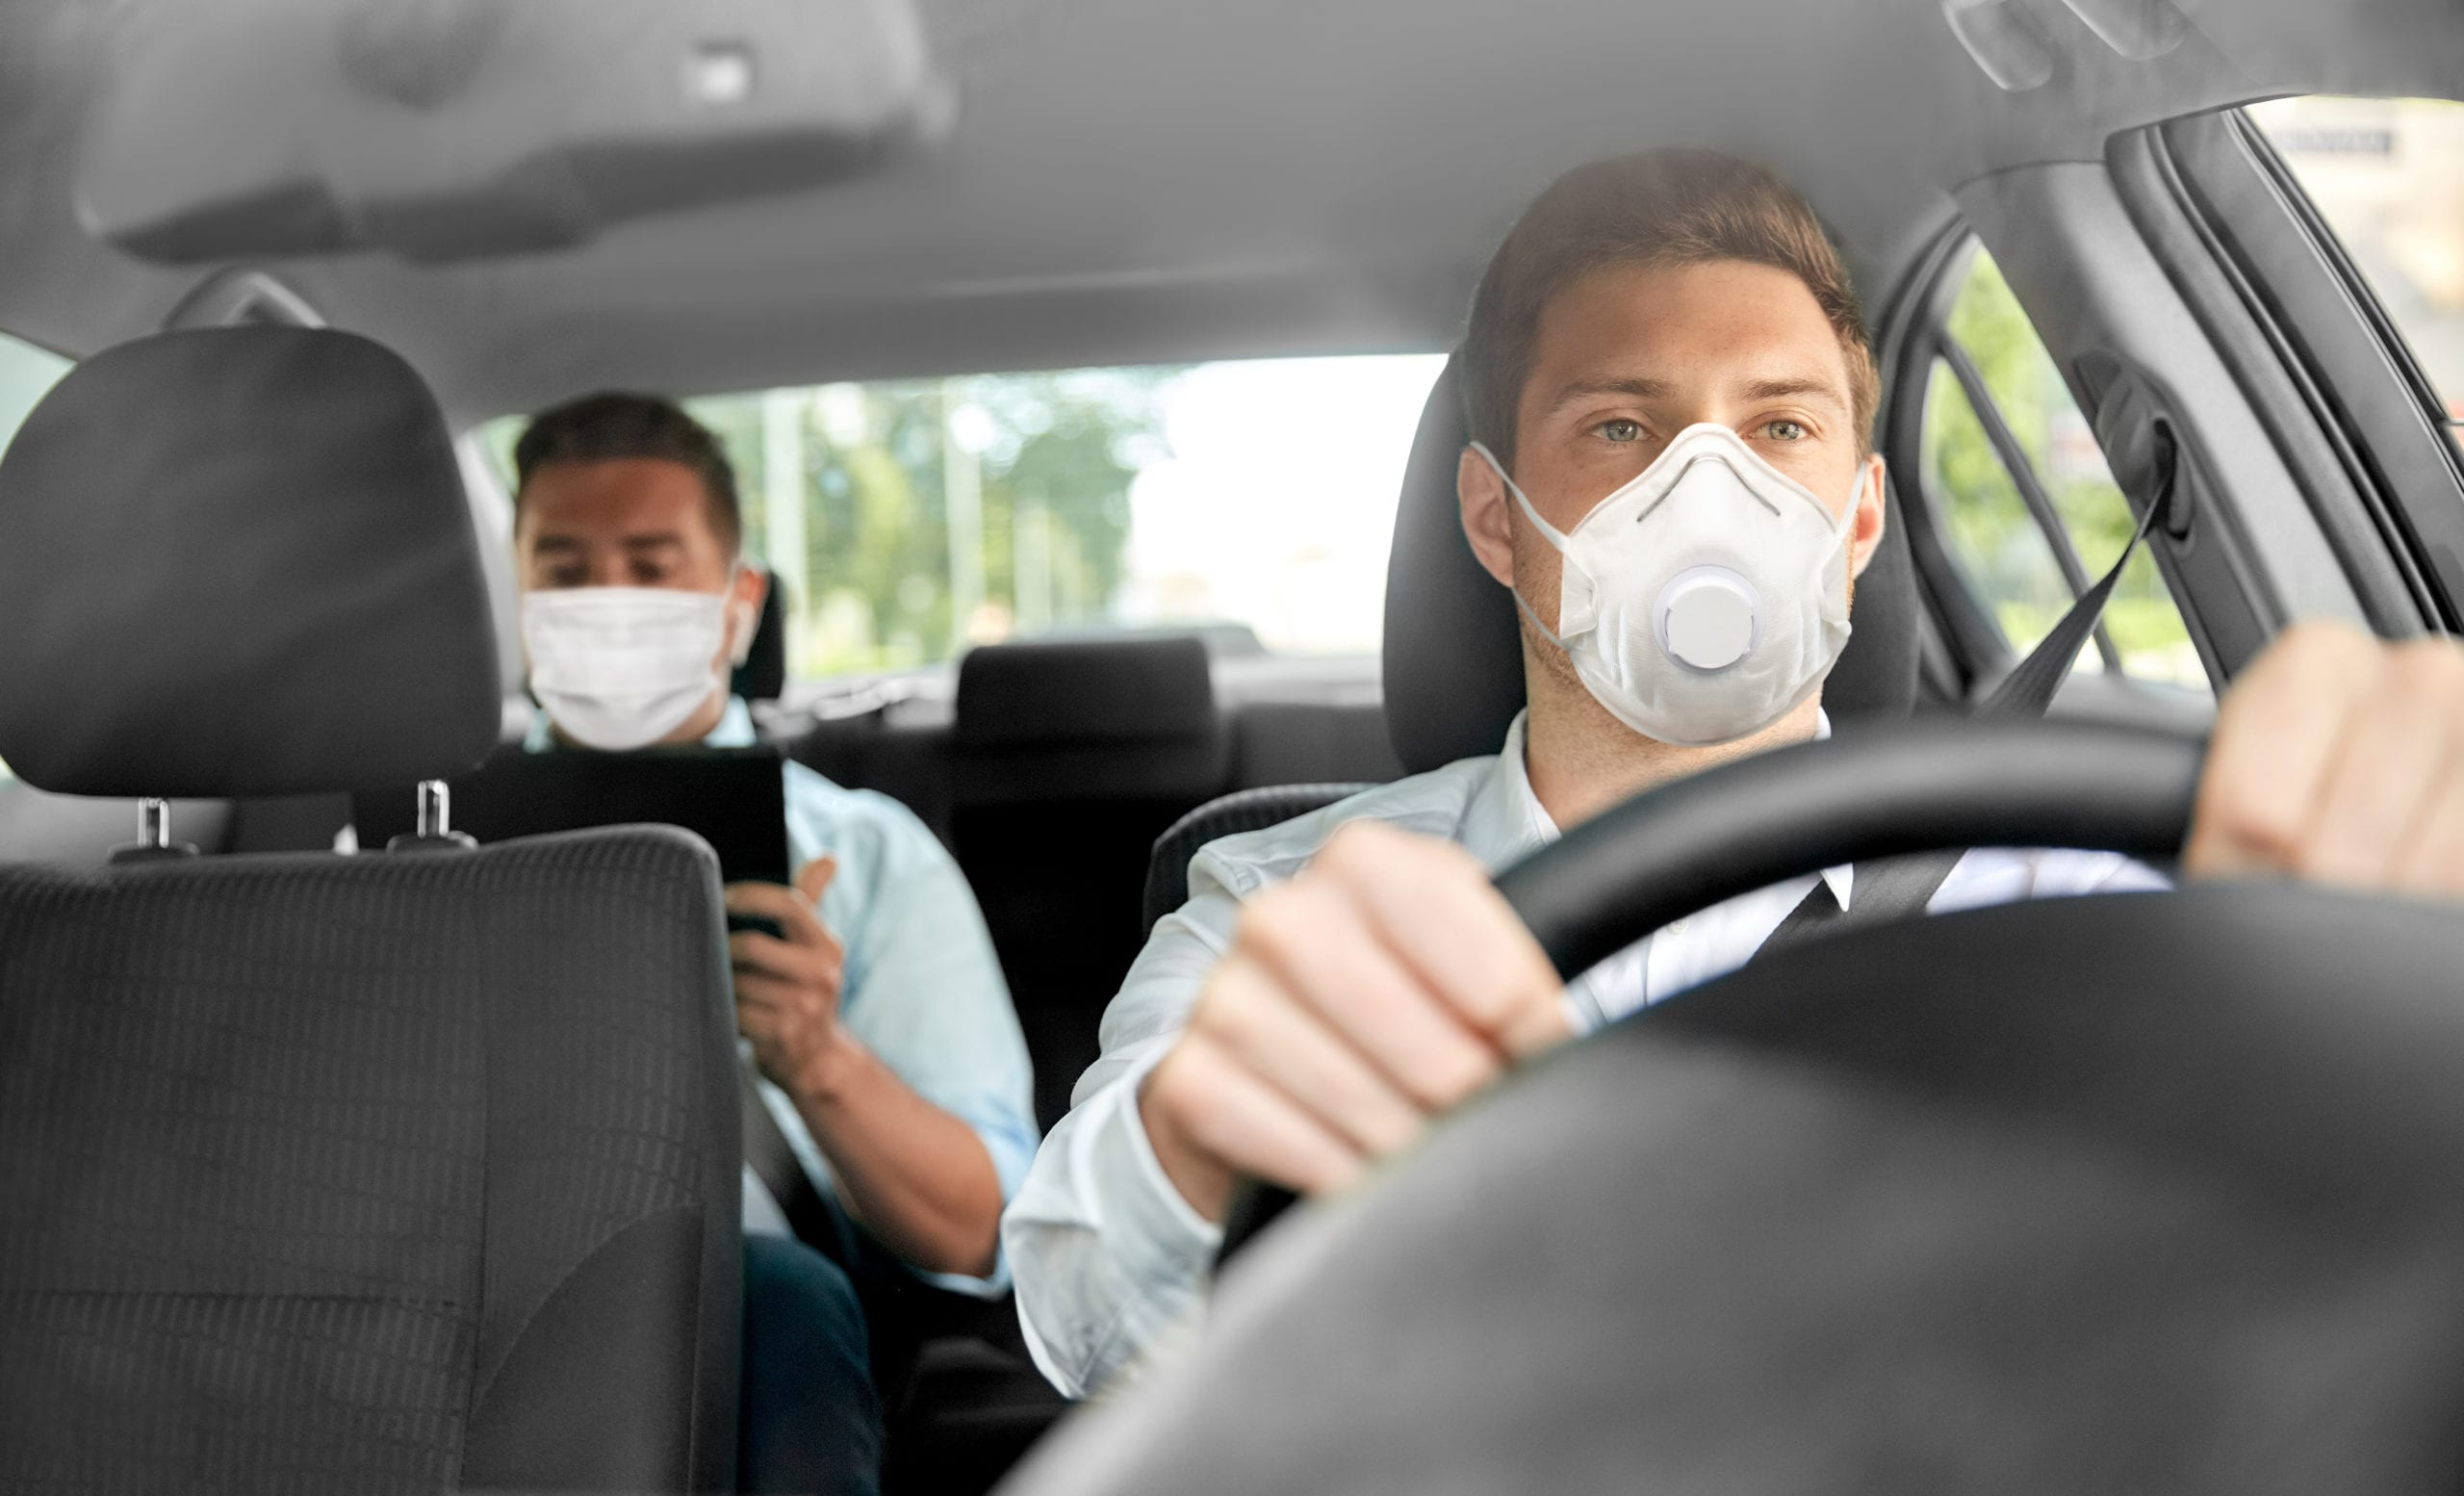 driver and passenger in car wearing protective masks